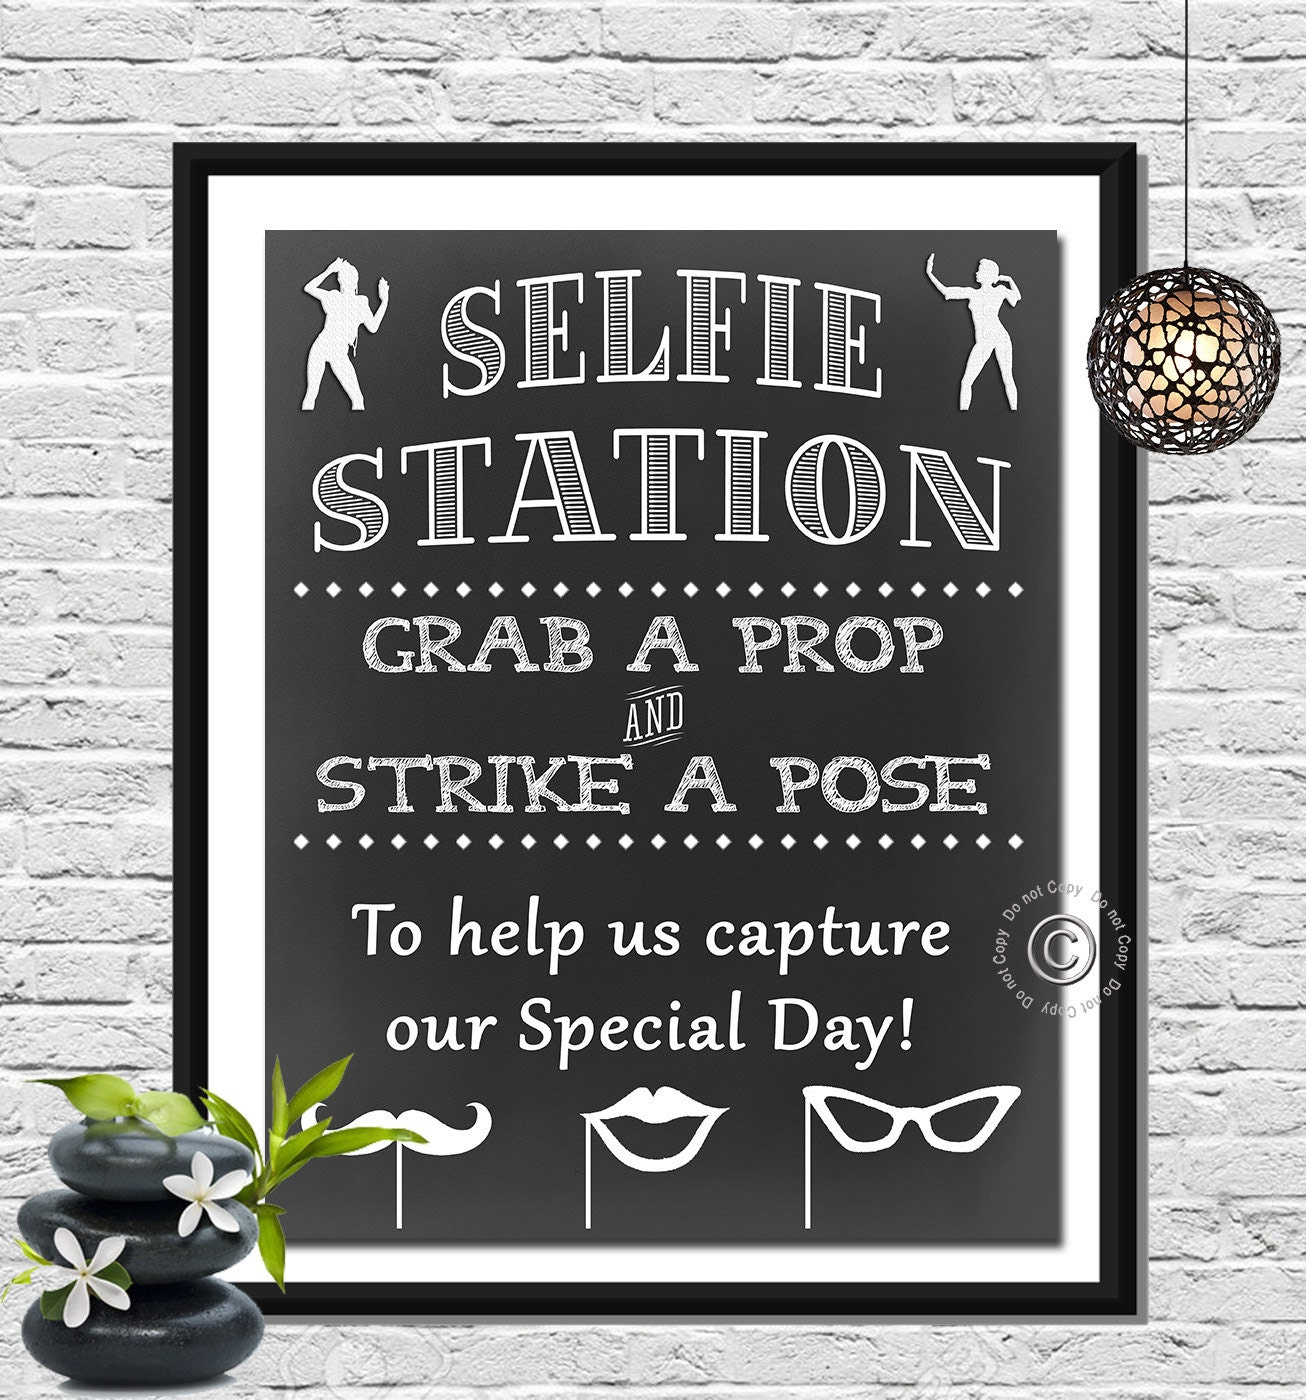 Photo Booth Sign Selfie Station Poster 5x7 8x10 And 11x14